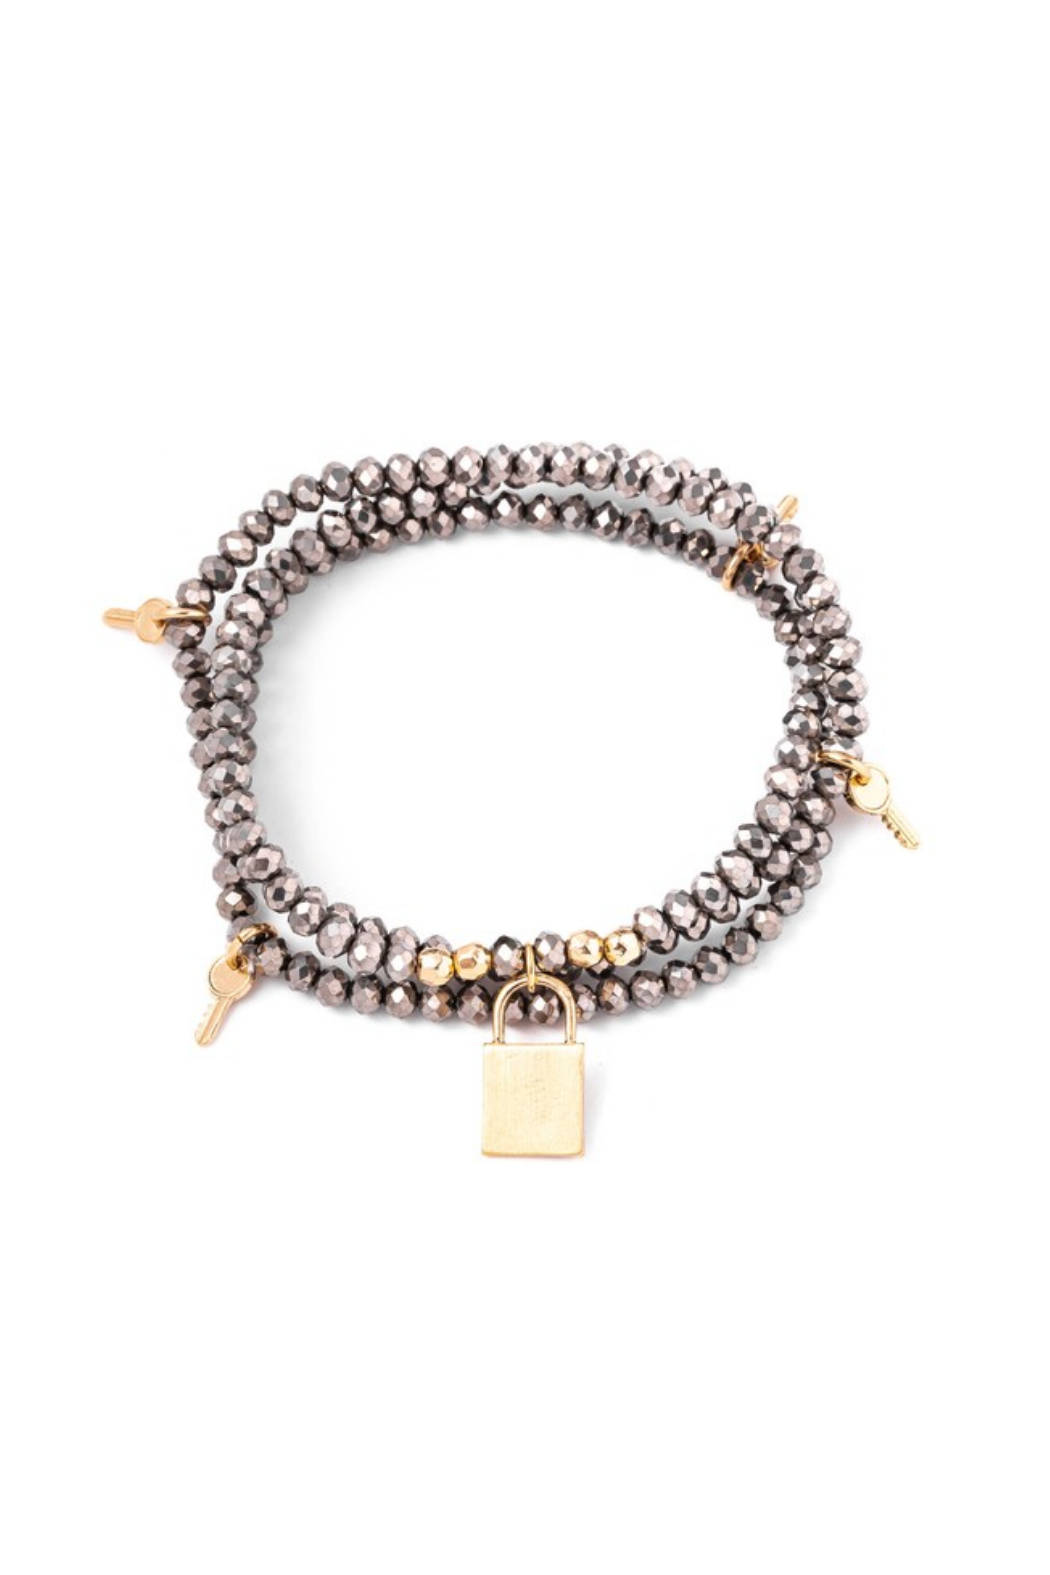 Anarchy Street Charming Faceted Bead Bracelet - Main Image